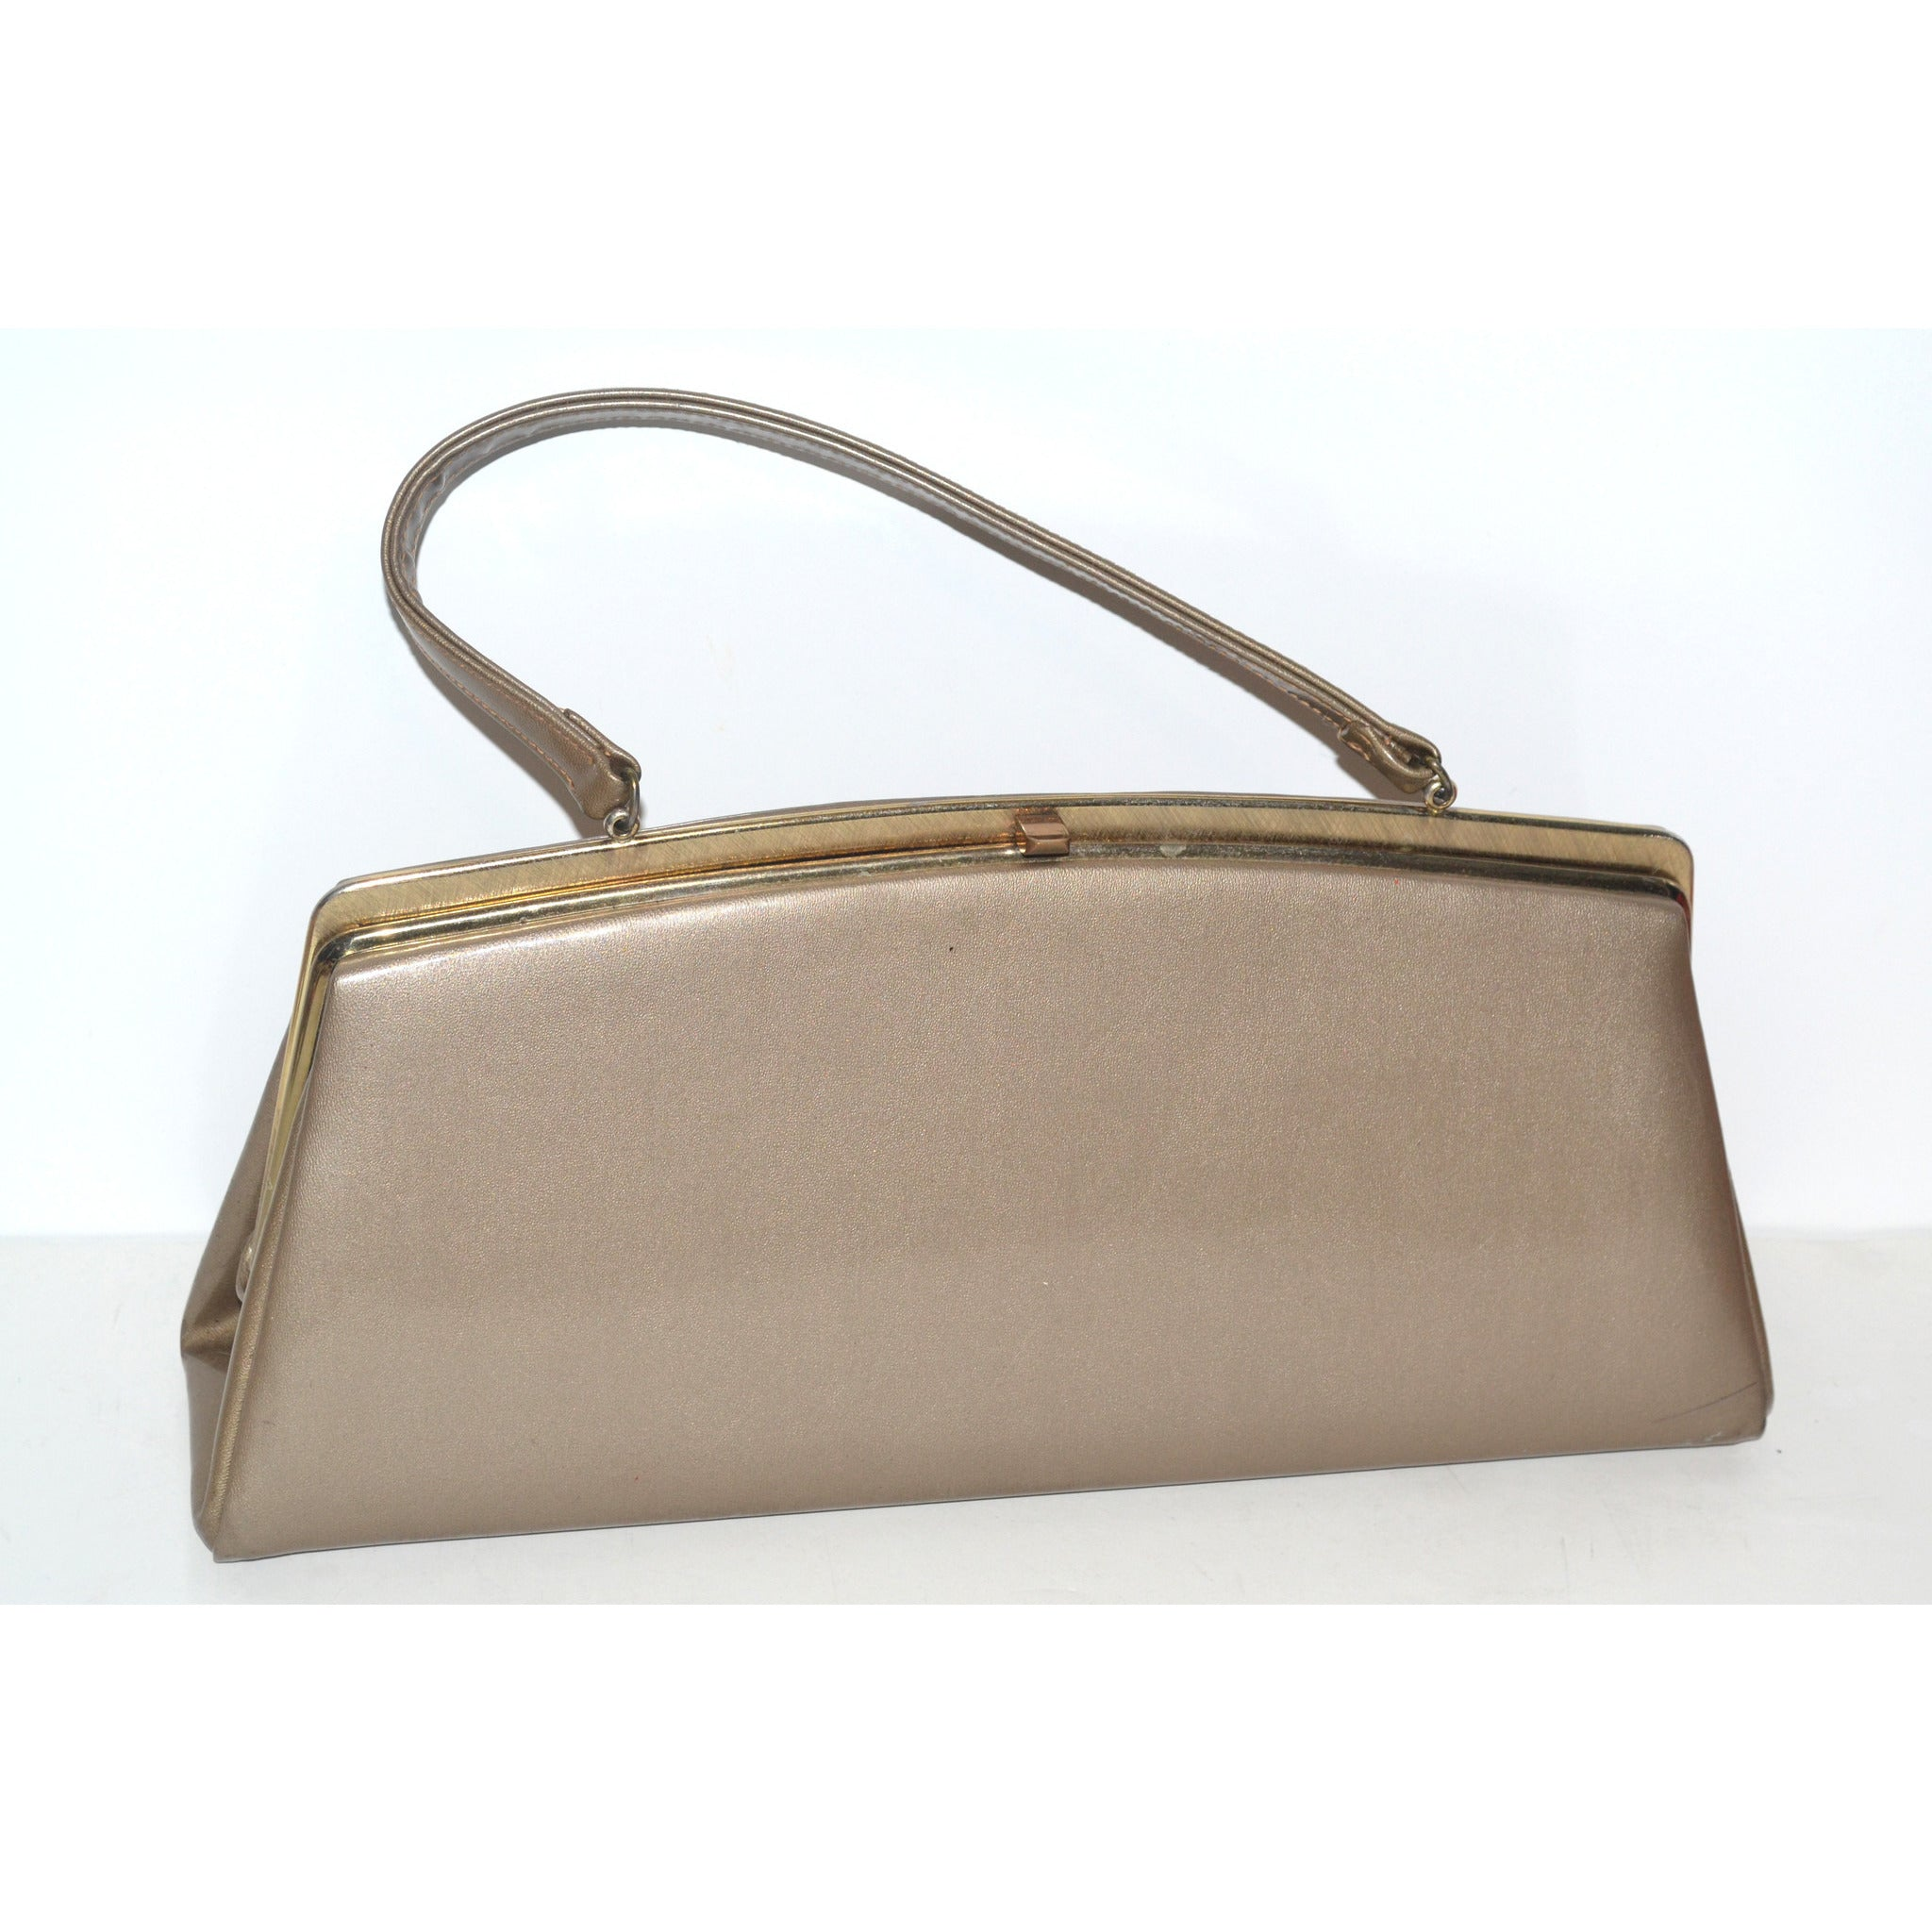 Vintage Bronze Metallic High Gloss Purse By Theodor